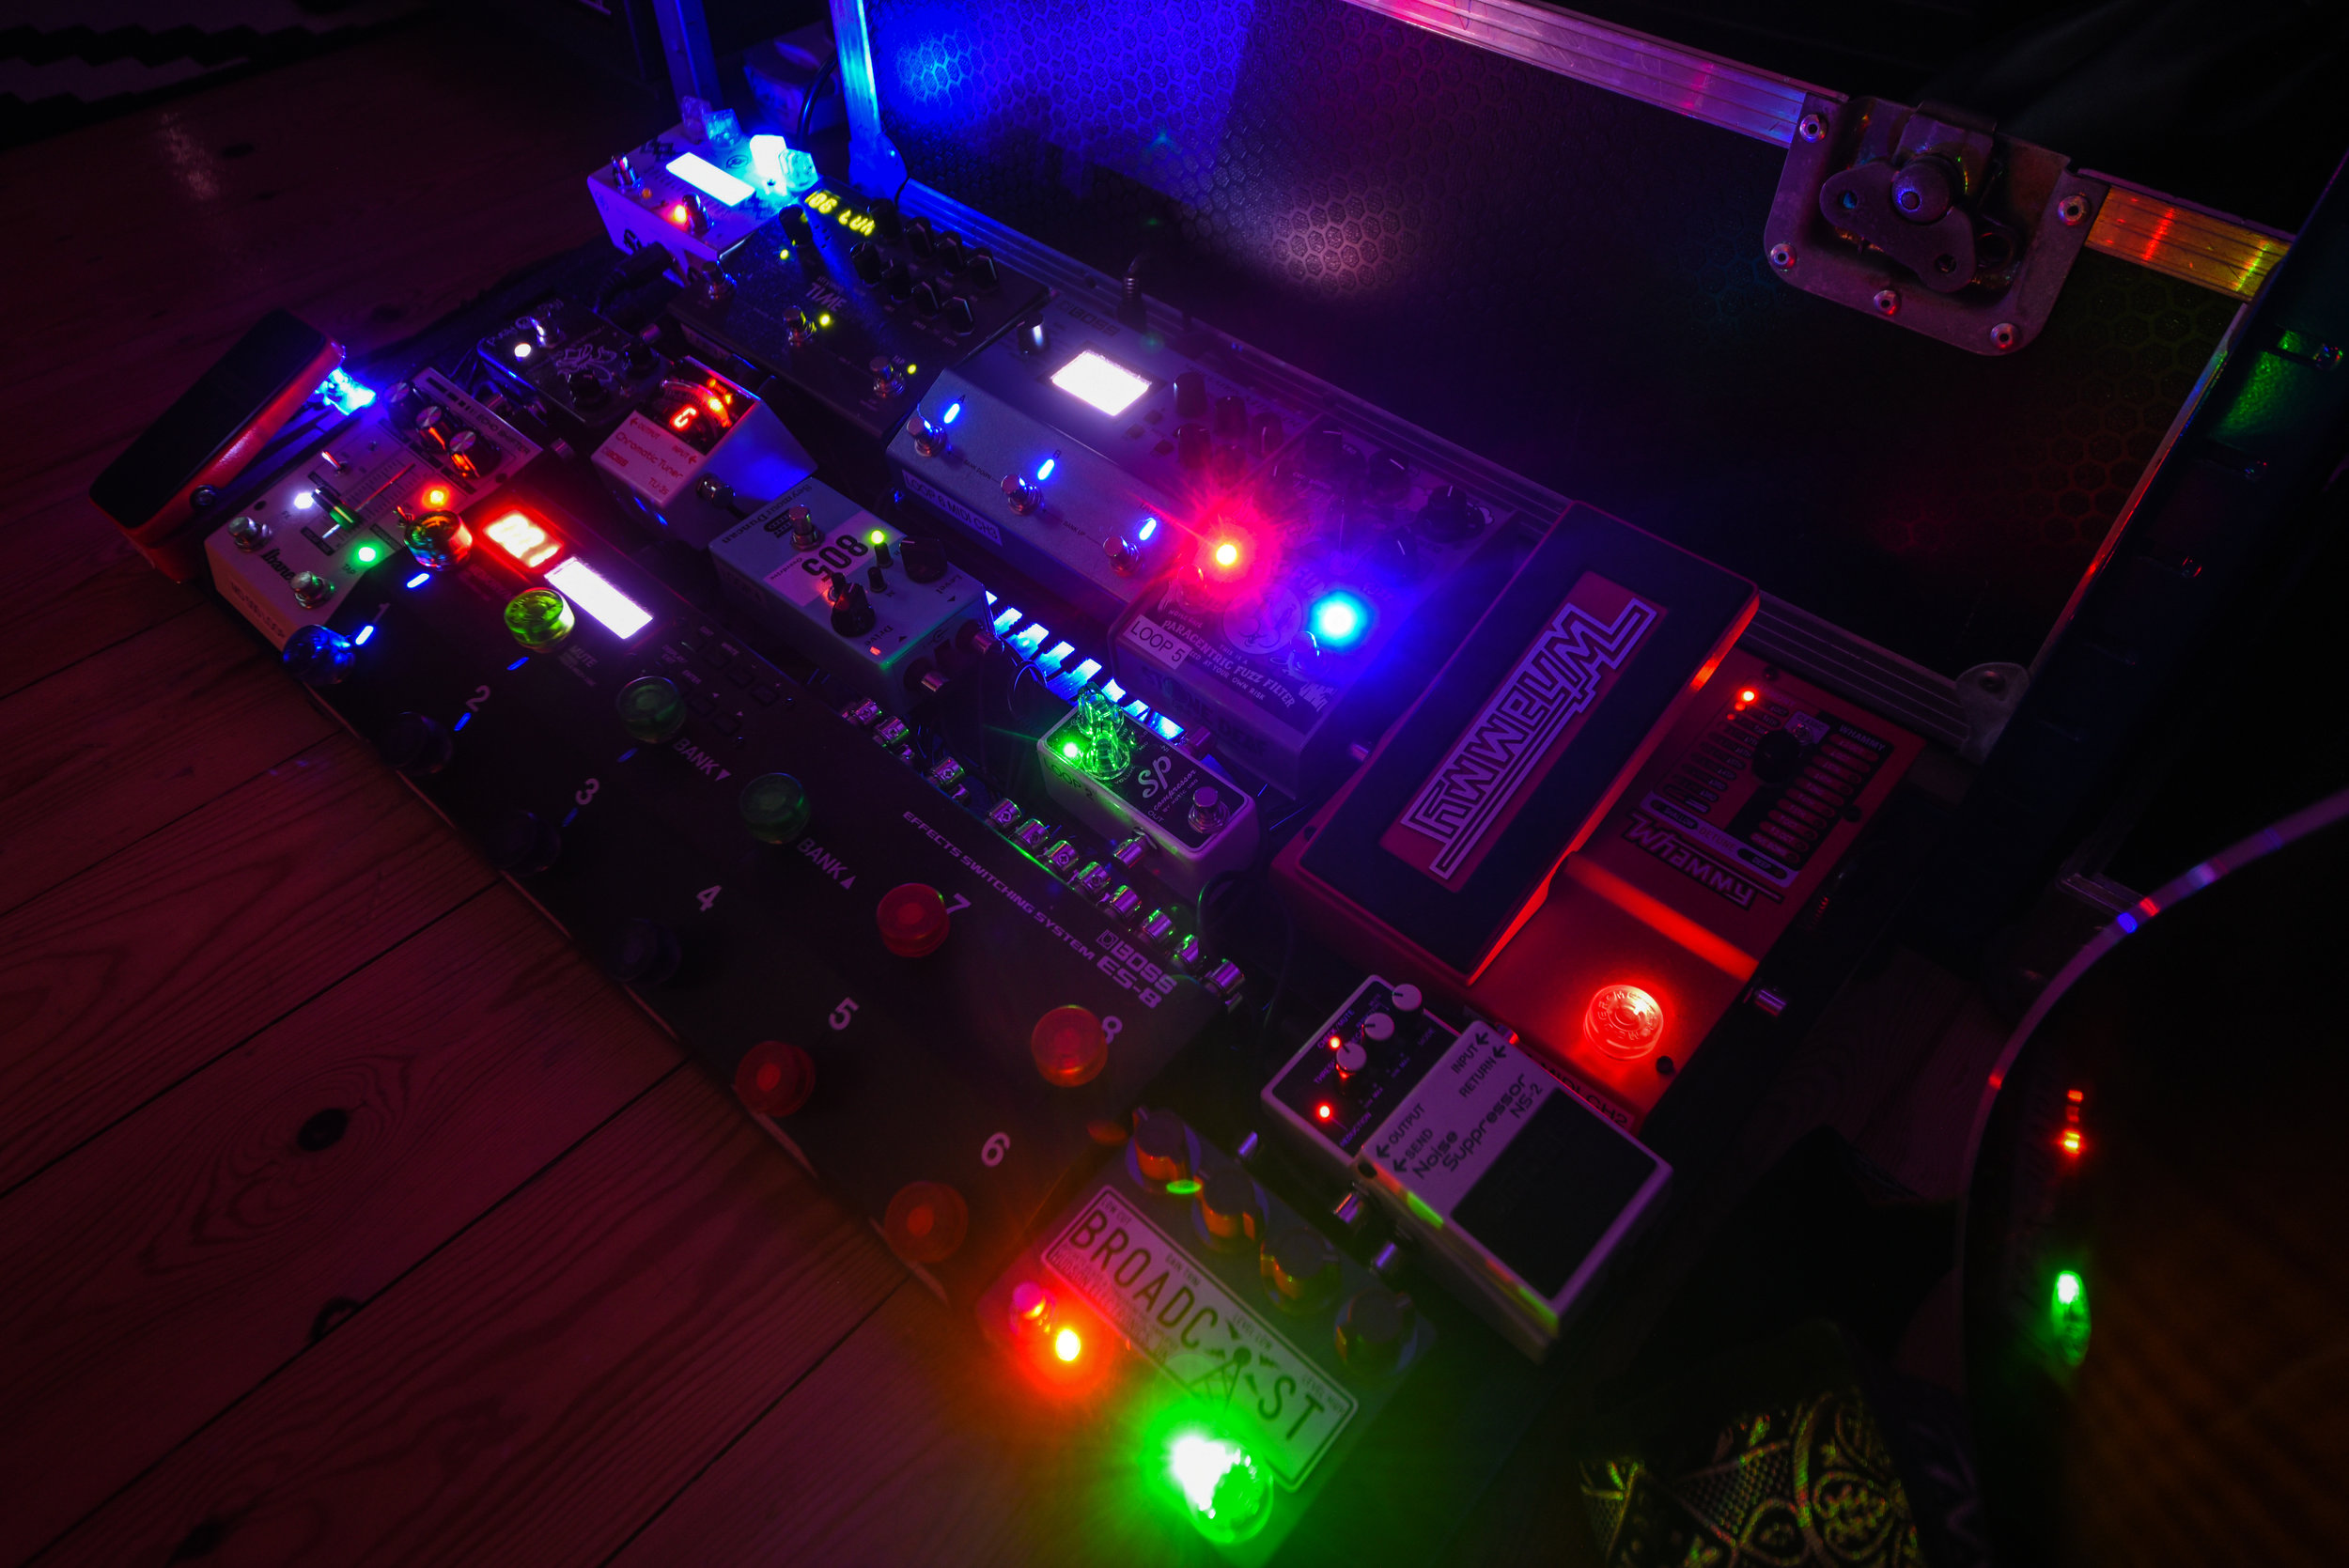 Benni-Dumville-Guitar-Recording-Pedalboard-Effects-Pedals-Band-Album-EP-Production-Microphone-Producer-Studio.jpg